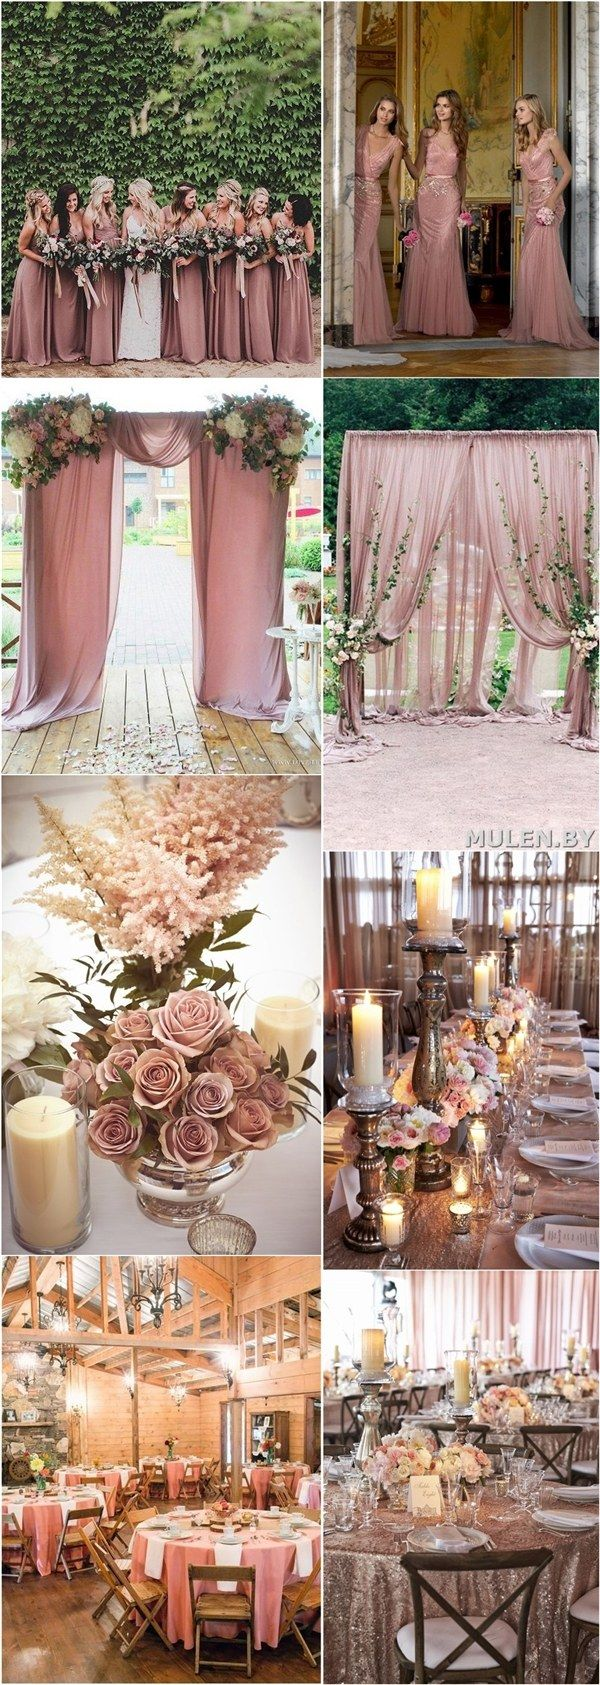 Wedding decorations tulle and lights october 2018  Dusty Rose Wedding Color Ideas  Dusty rose wedding Wedding and